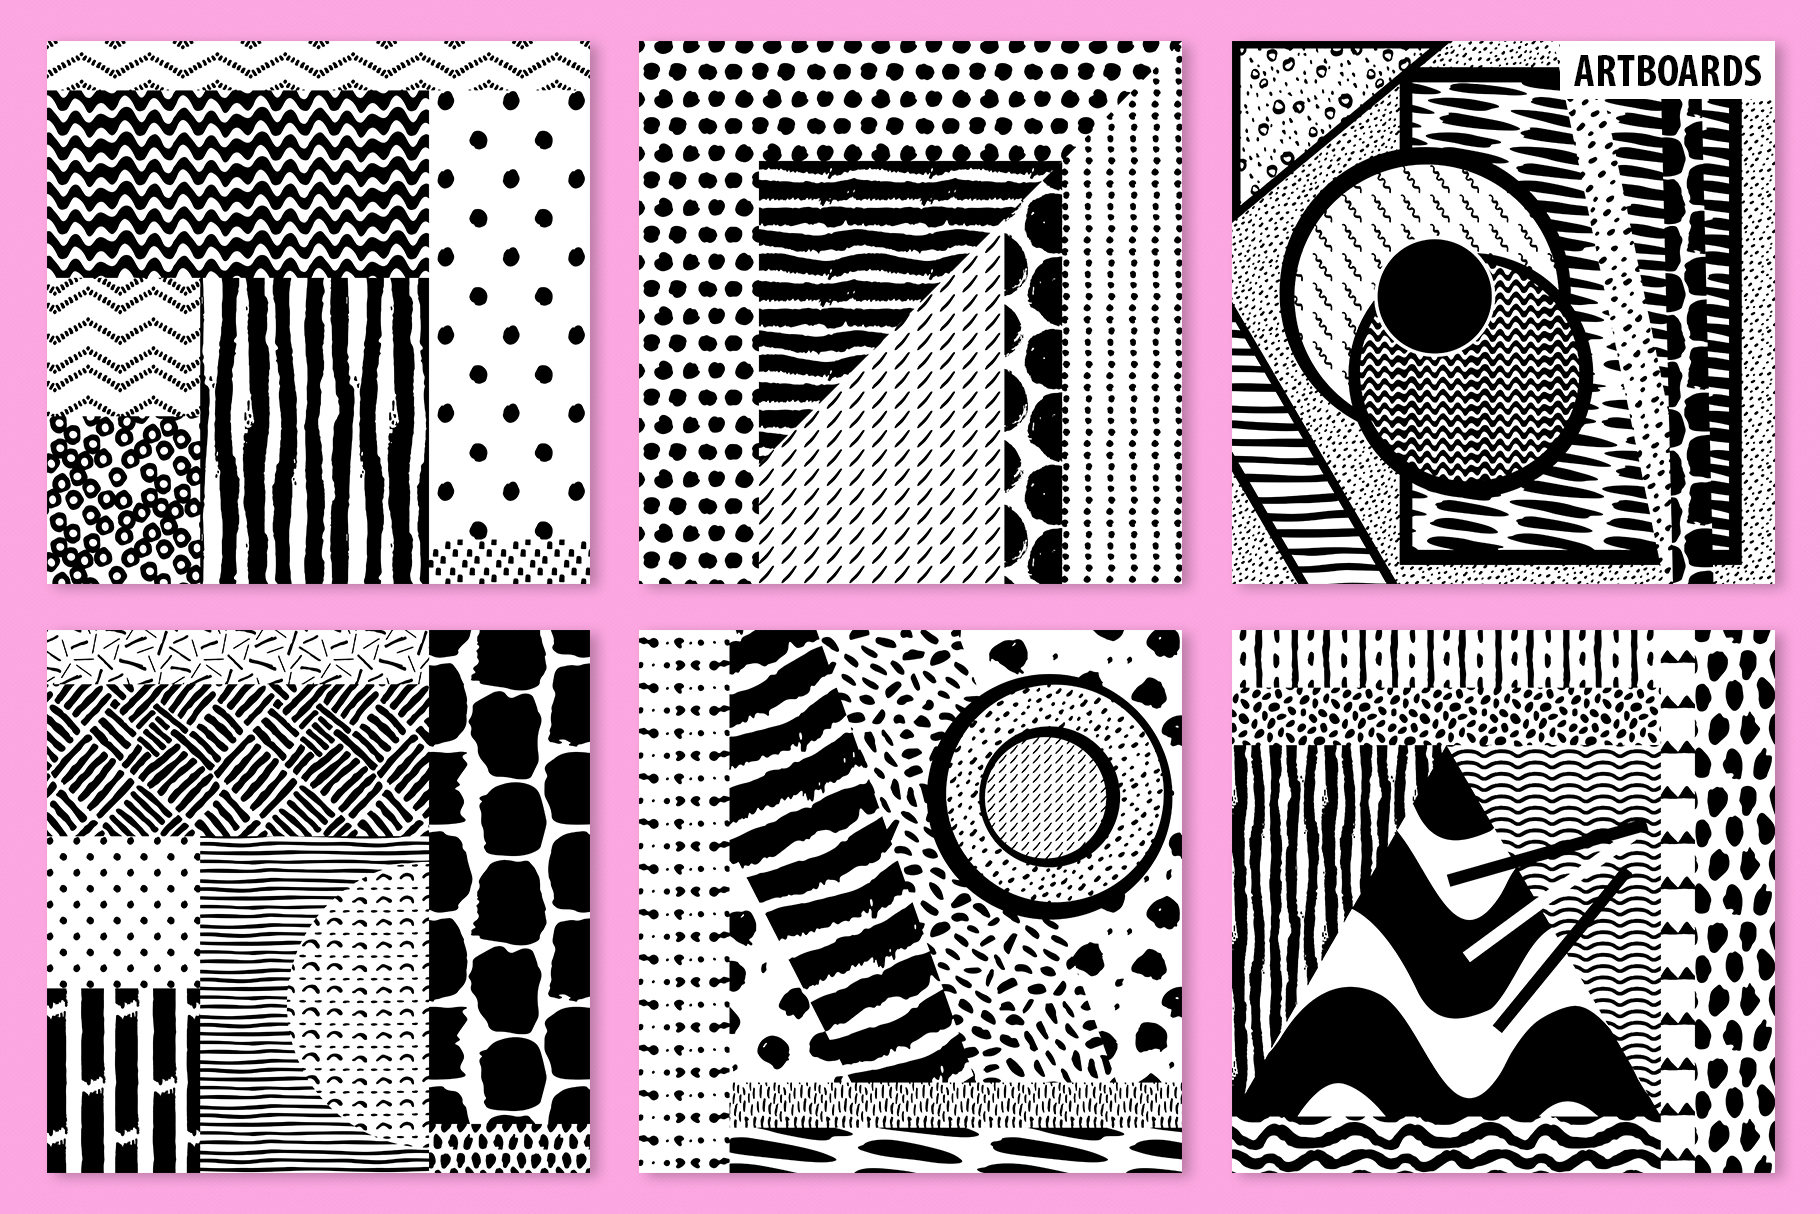 Abstract Brushstroke Ink Patterns, Artboards & Elements example image 9